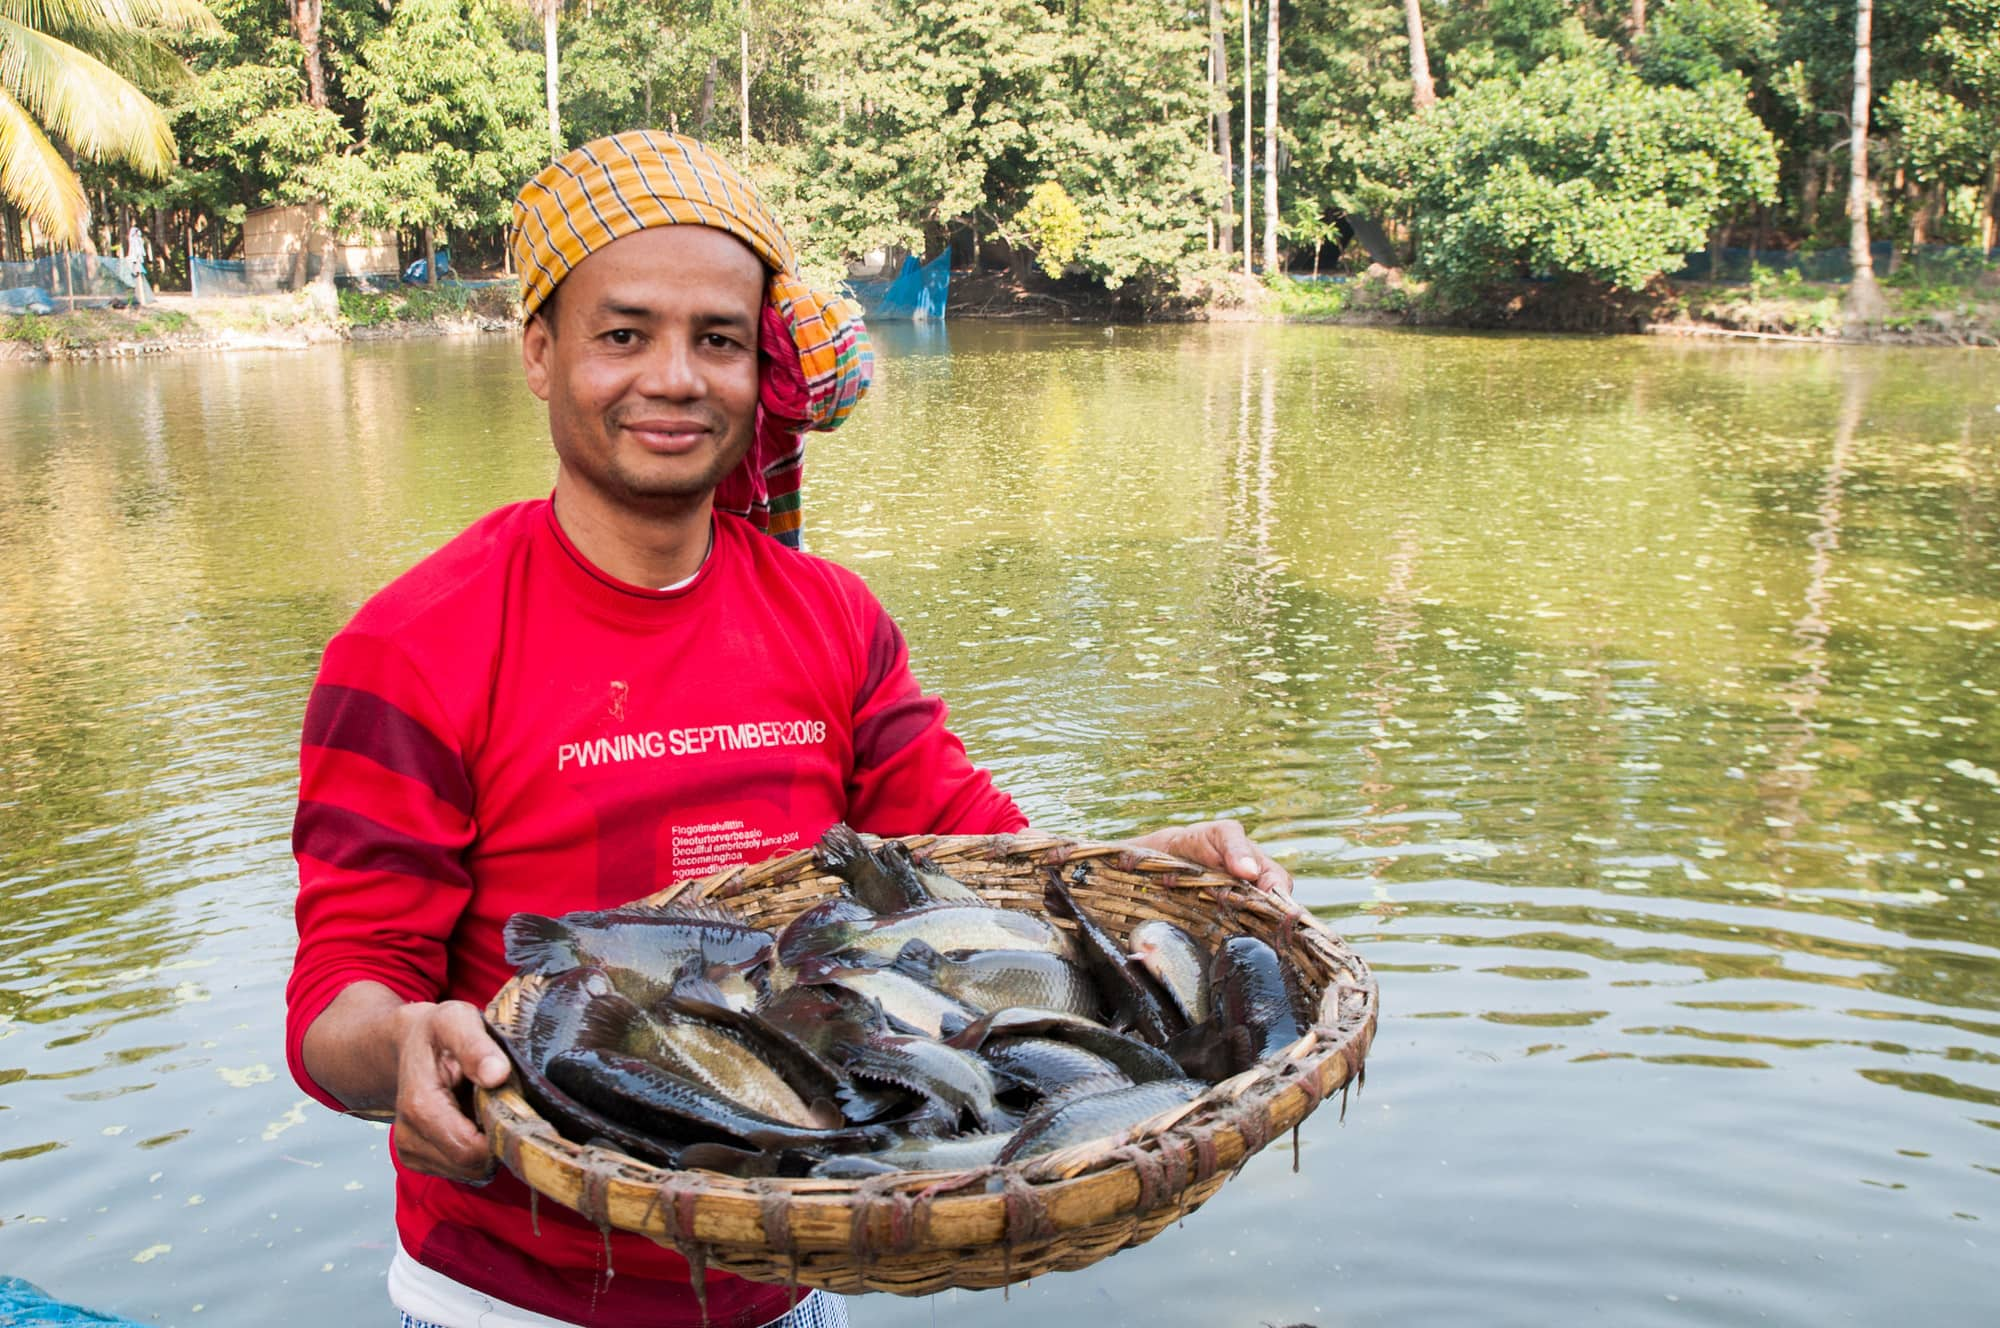 A Bangladeshi farmer poses with the climbing perch fish harvested from his aquaculture pond. The Gates Foundation is in the process of investing in the country's smallholder aquaculture sector. Photo by Balaram Mahalder.